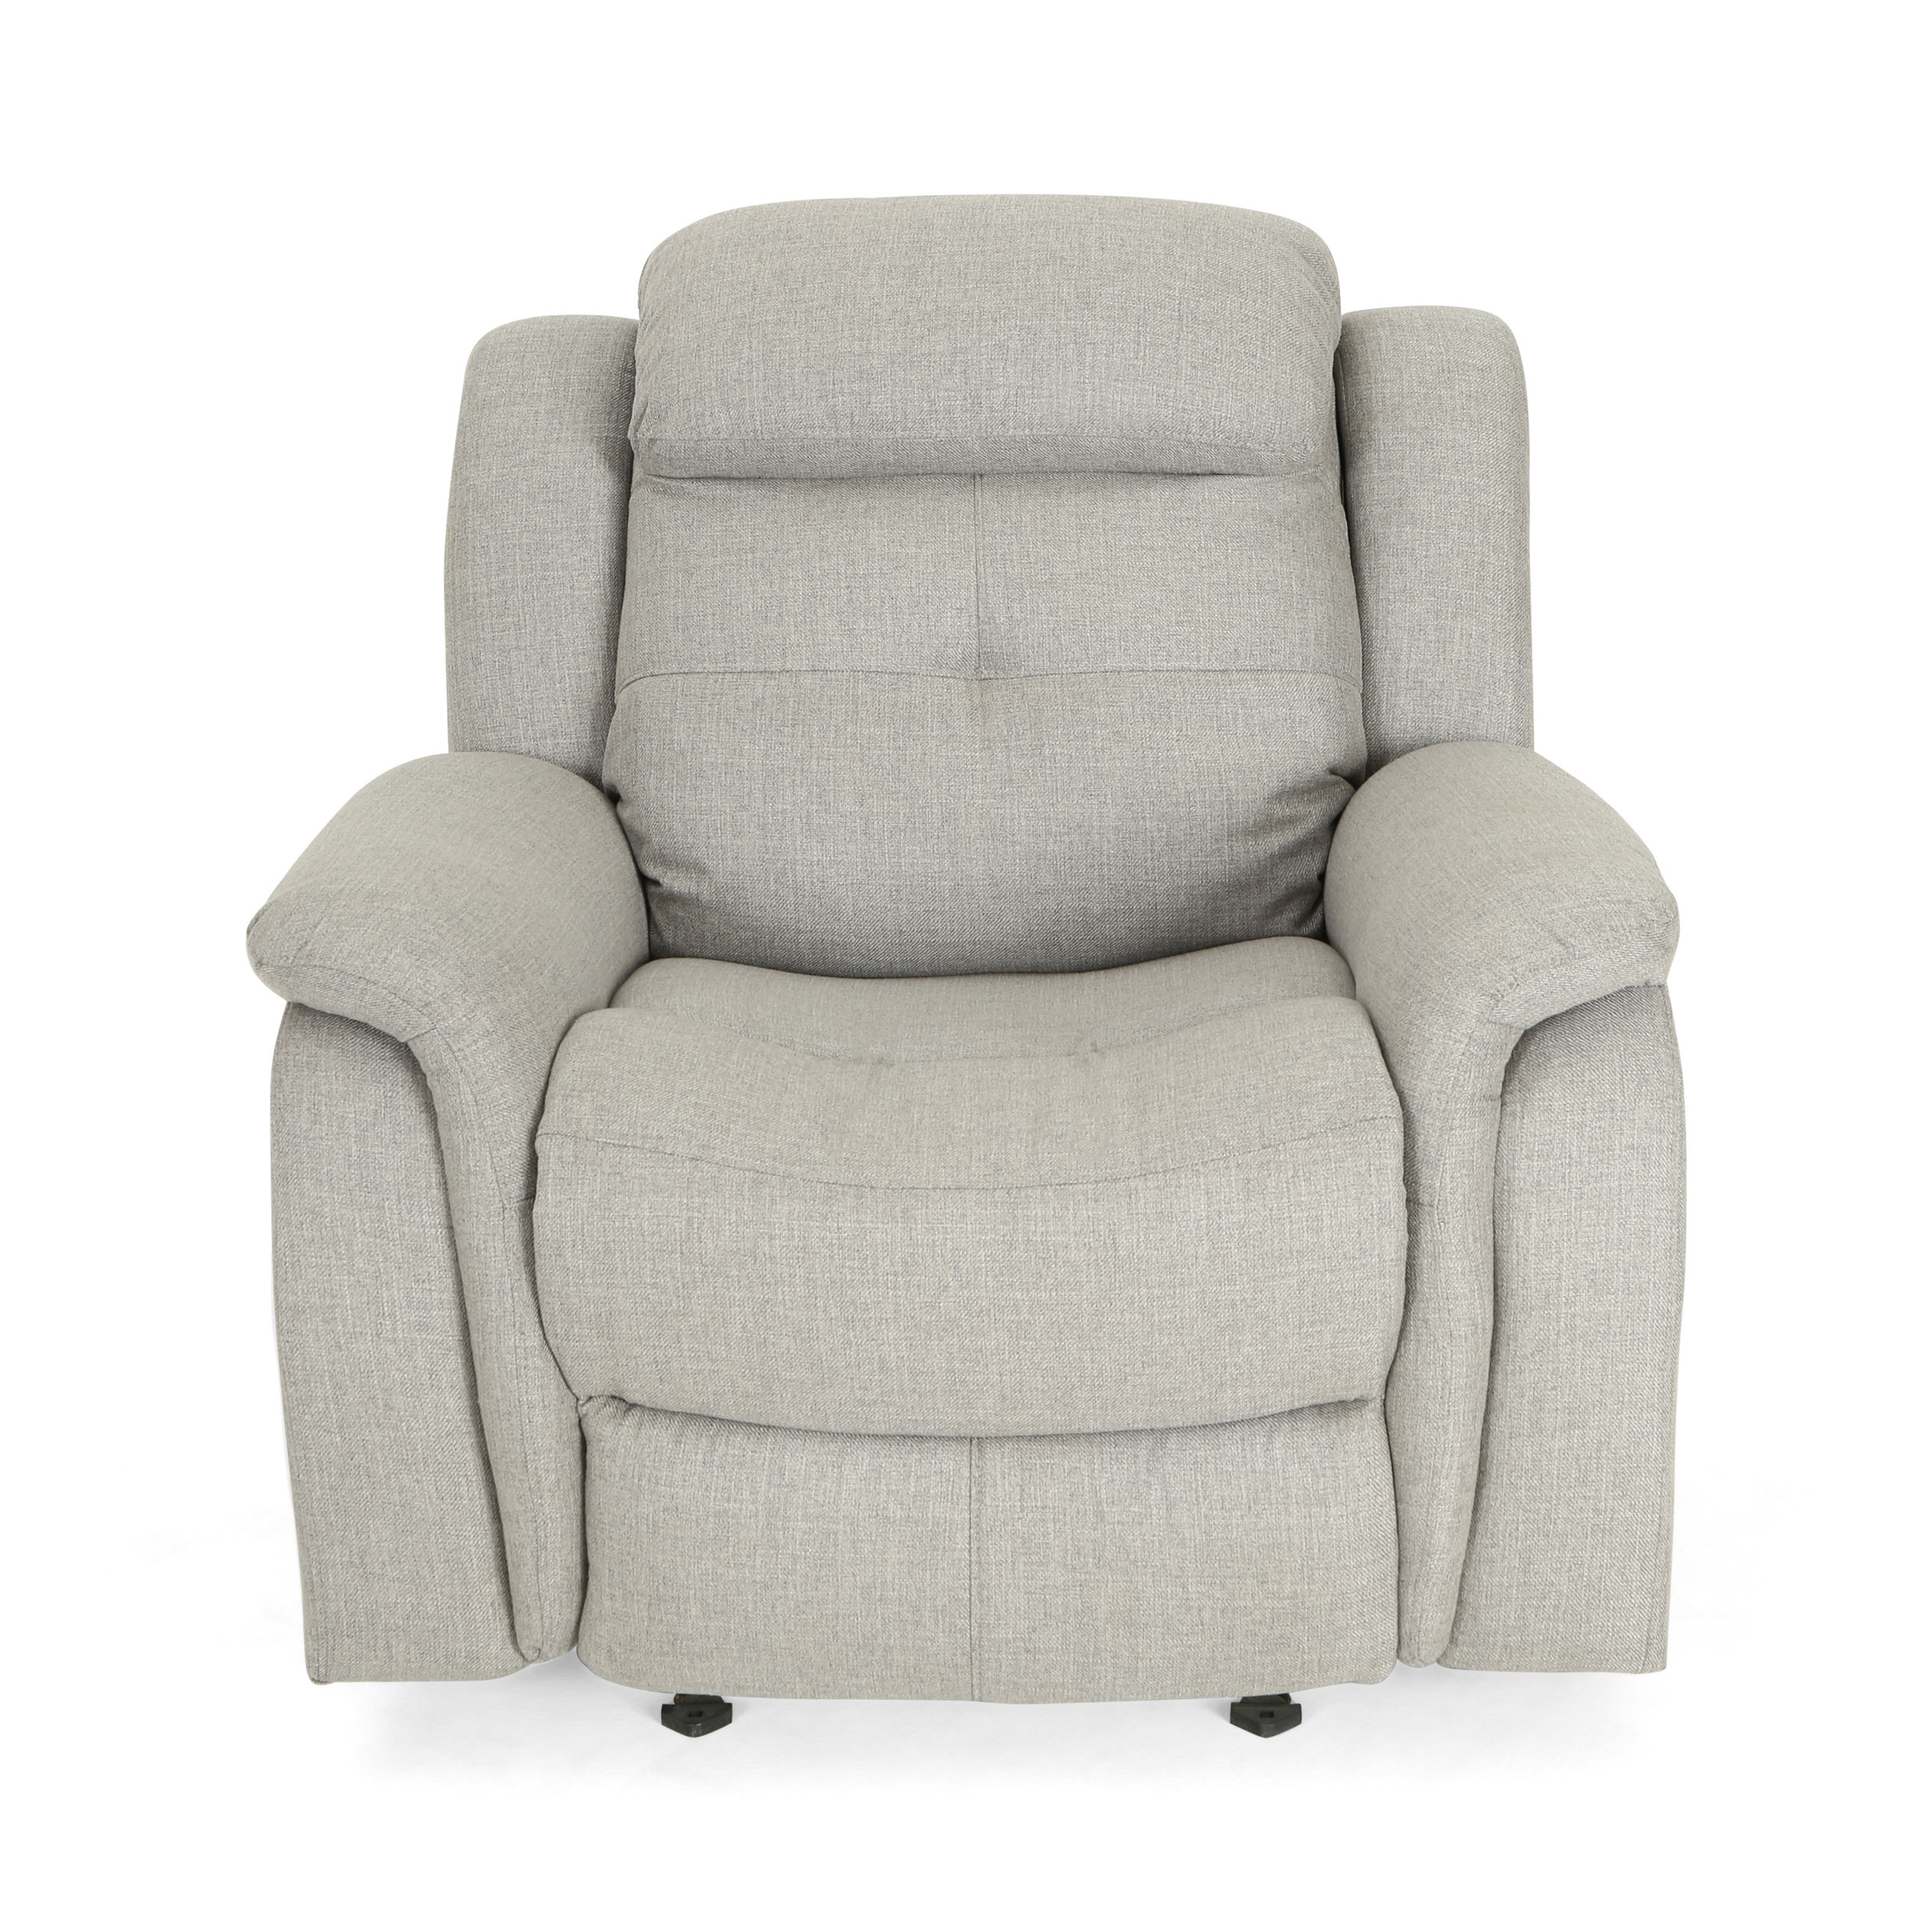 Latitude Run Anndale Traditional Manual Rocking Glider Recliner For Trendy Dale Iii Polyurethane Swivel Glider Recliners (View 9 of 20)